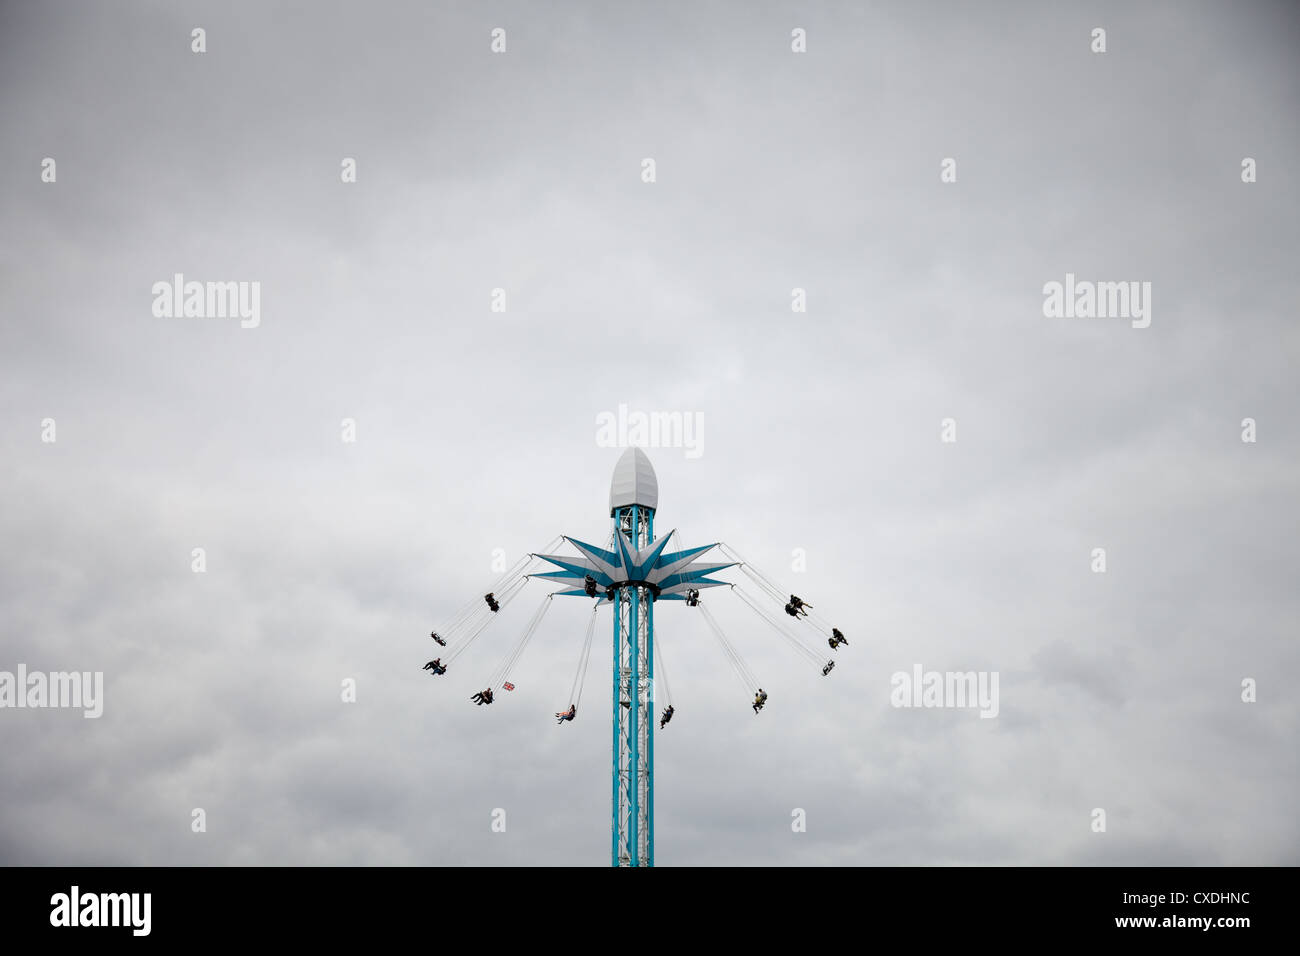 The Star Flyer at Priceless London Wonderground, South Bank - Stock Image